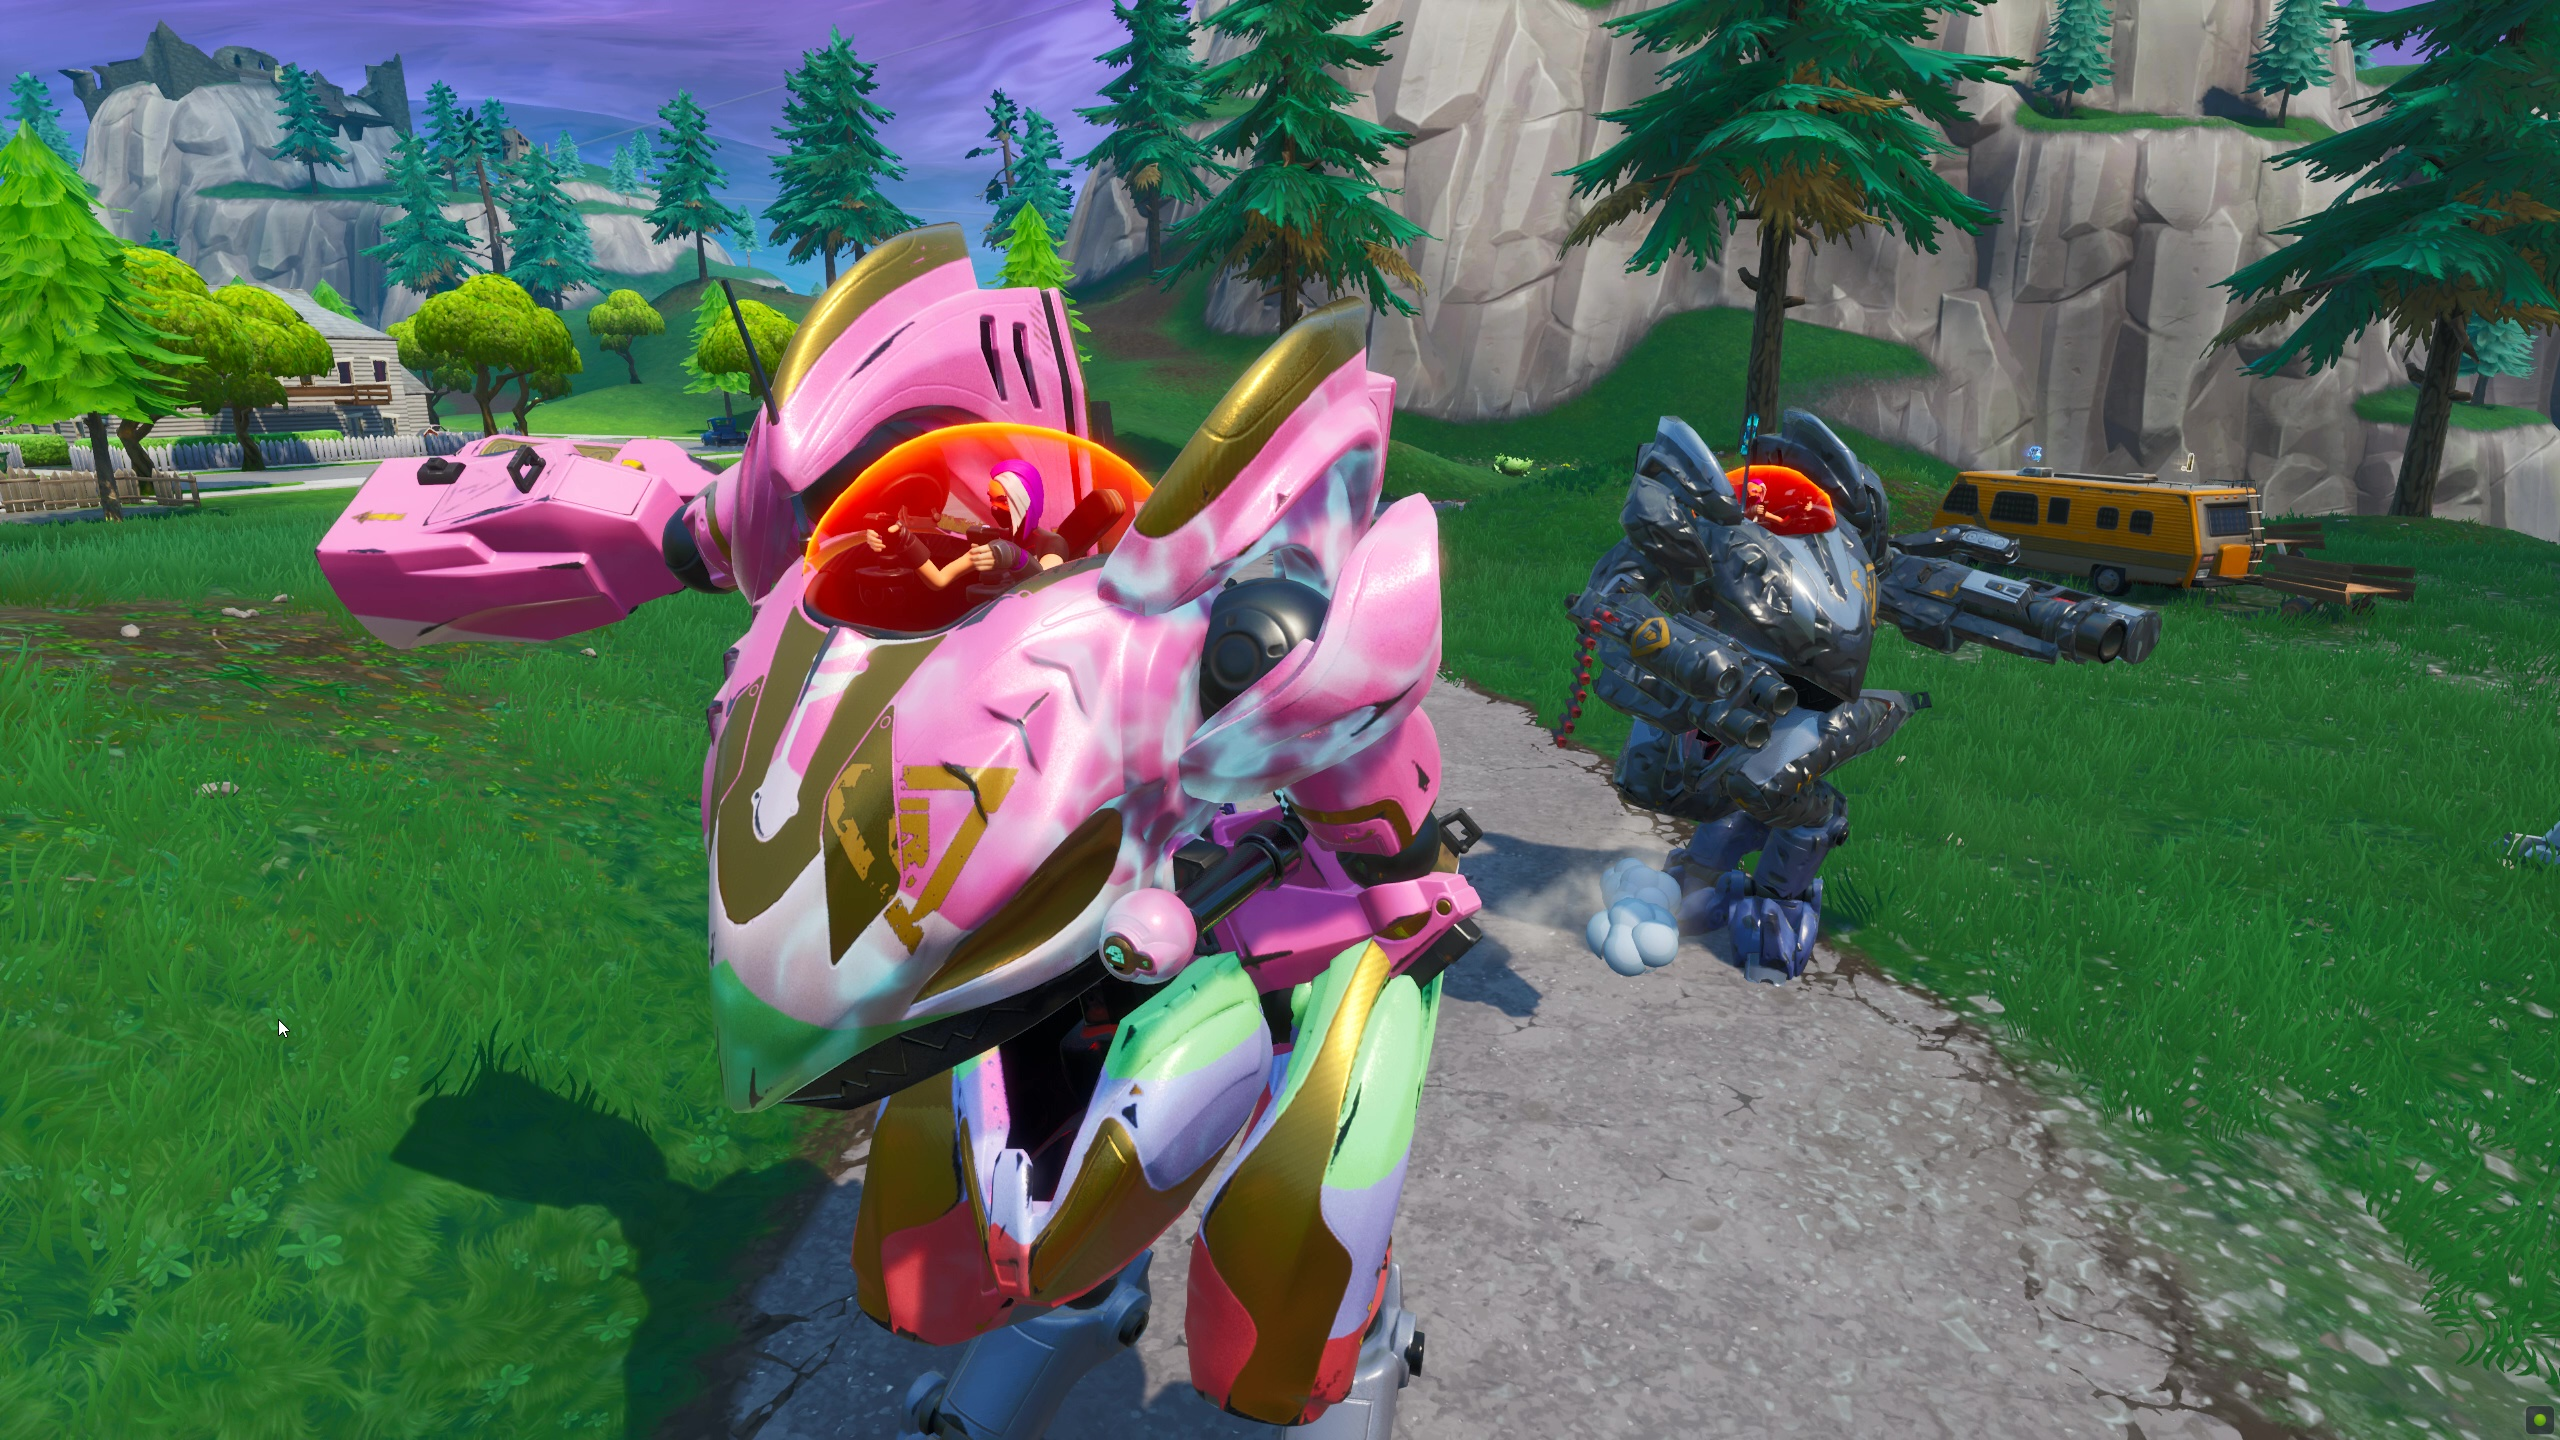 Fortnite Season 10: see the battle pass, map changes, and story